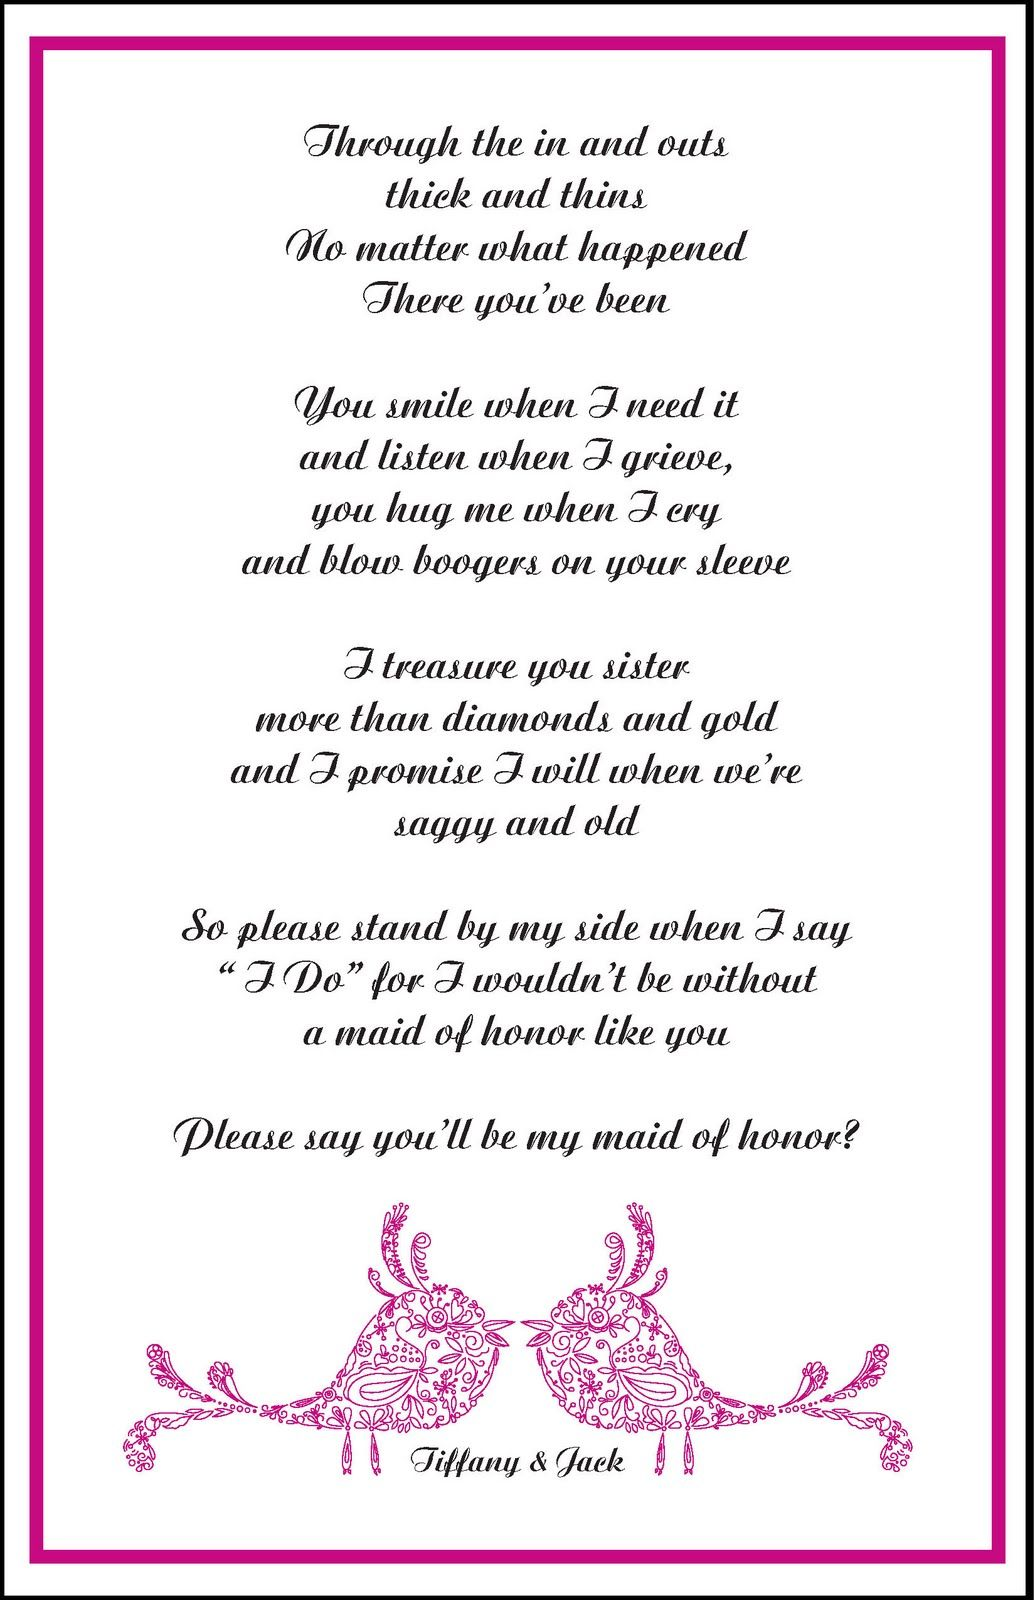 Design party invitations will you be a bridesmaid 1035x1600 design party invitations will you be a bridesmaid 1035x1600 stopboris Image collections